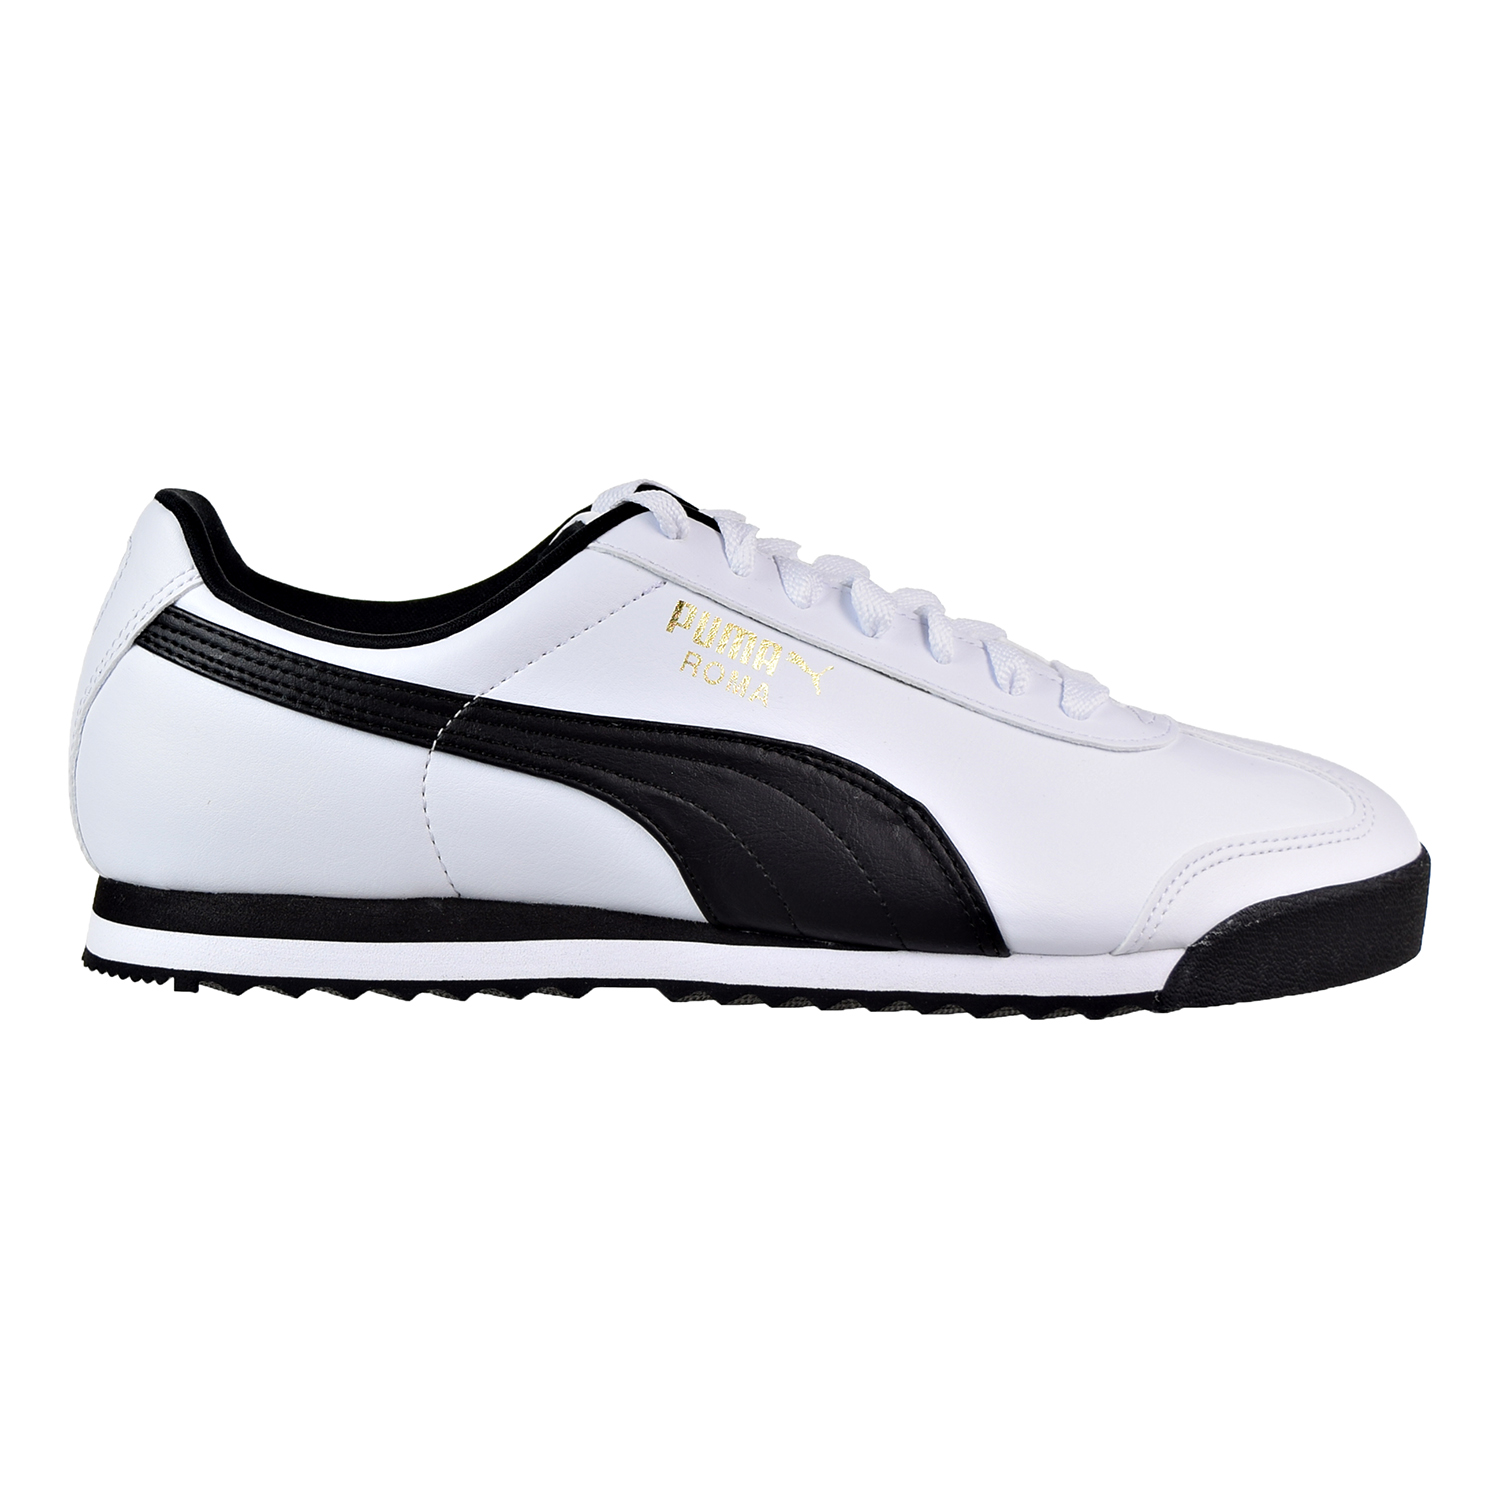 Puma Roma Basic Men's Shoes Puma White Puma Black 353572-04 by Puma